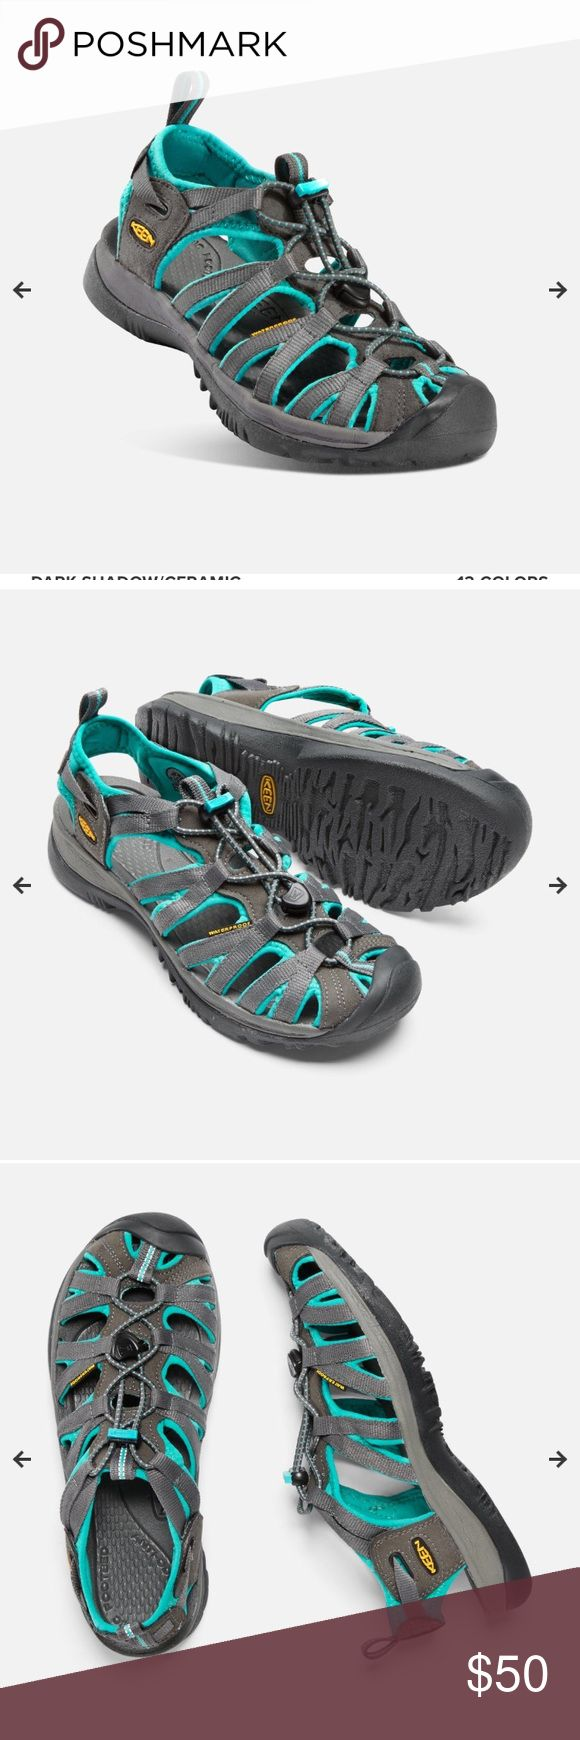 Sandals or shoes for hiking - Keene Women S Whisper Used In Great Condition Great Hiking Sandal Used Them In Hawaii